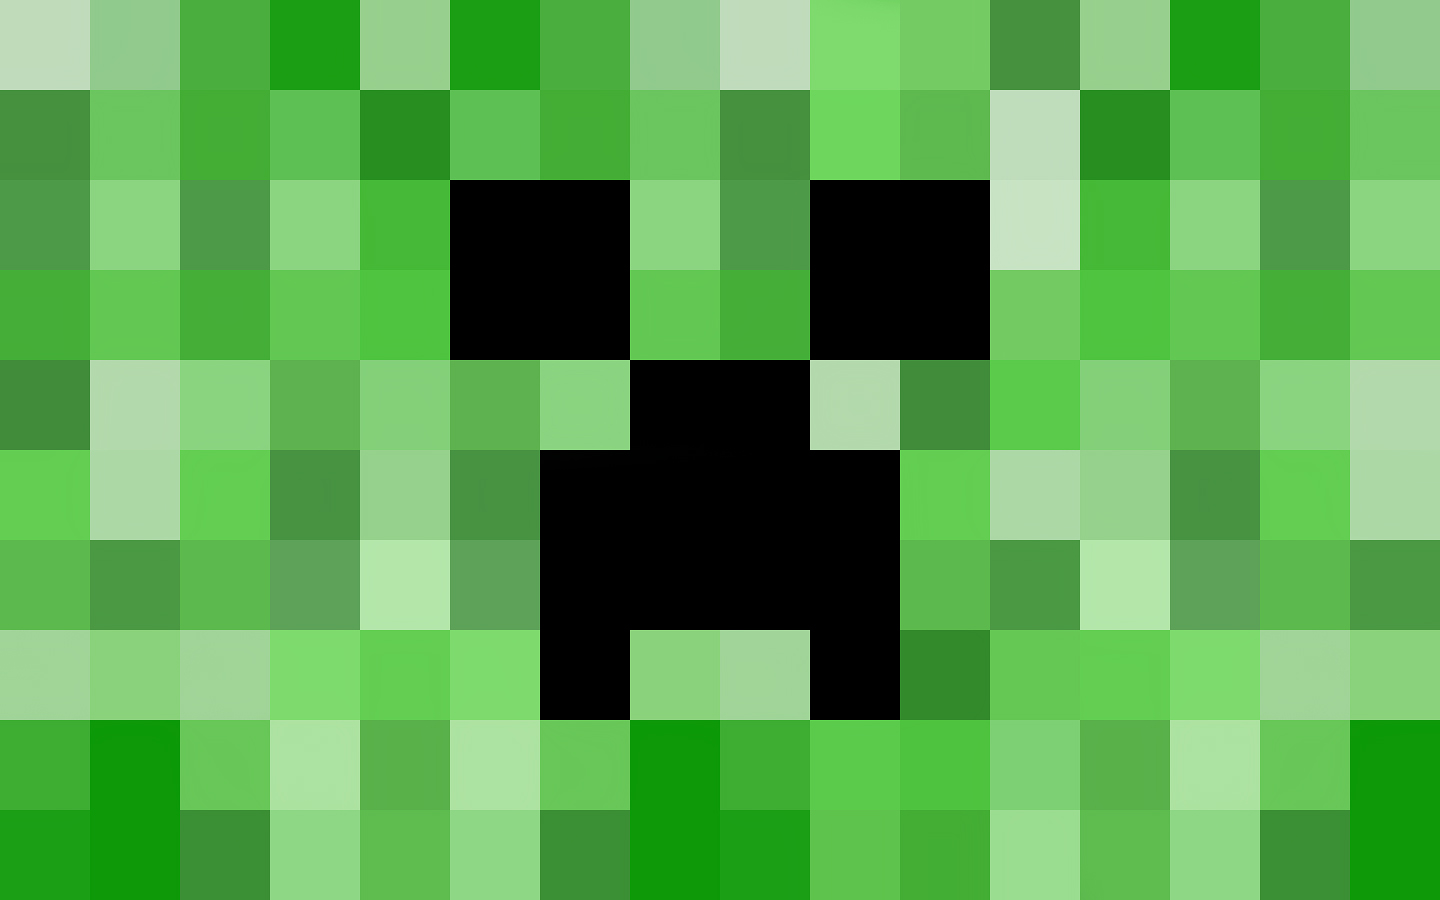 Minecraft Creeper Wallpaper by LynchMob10-09 on DeviantArt